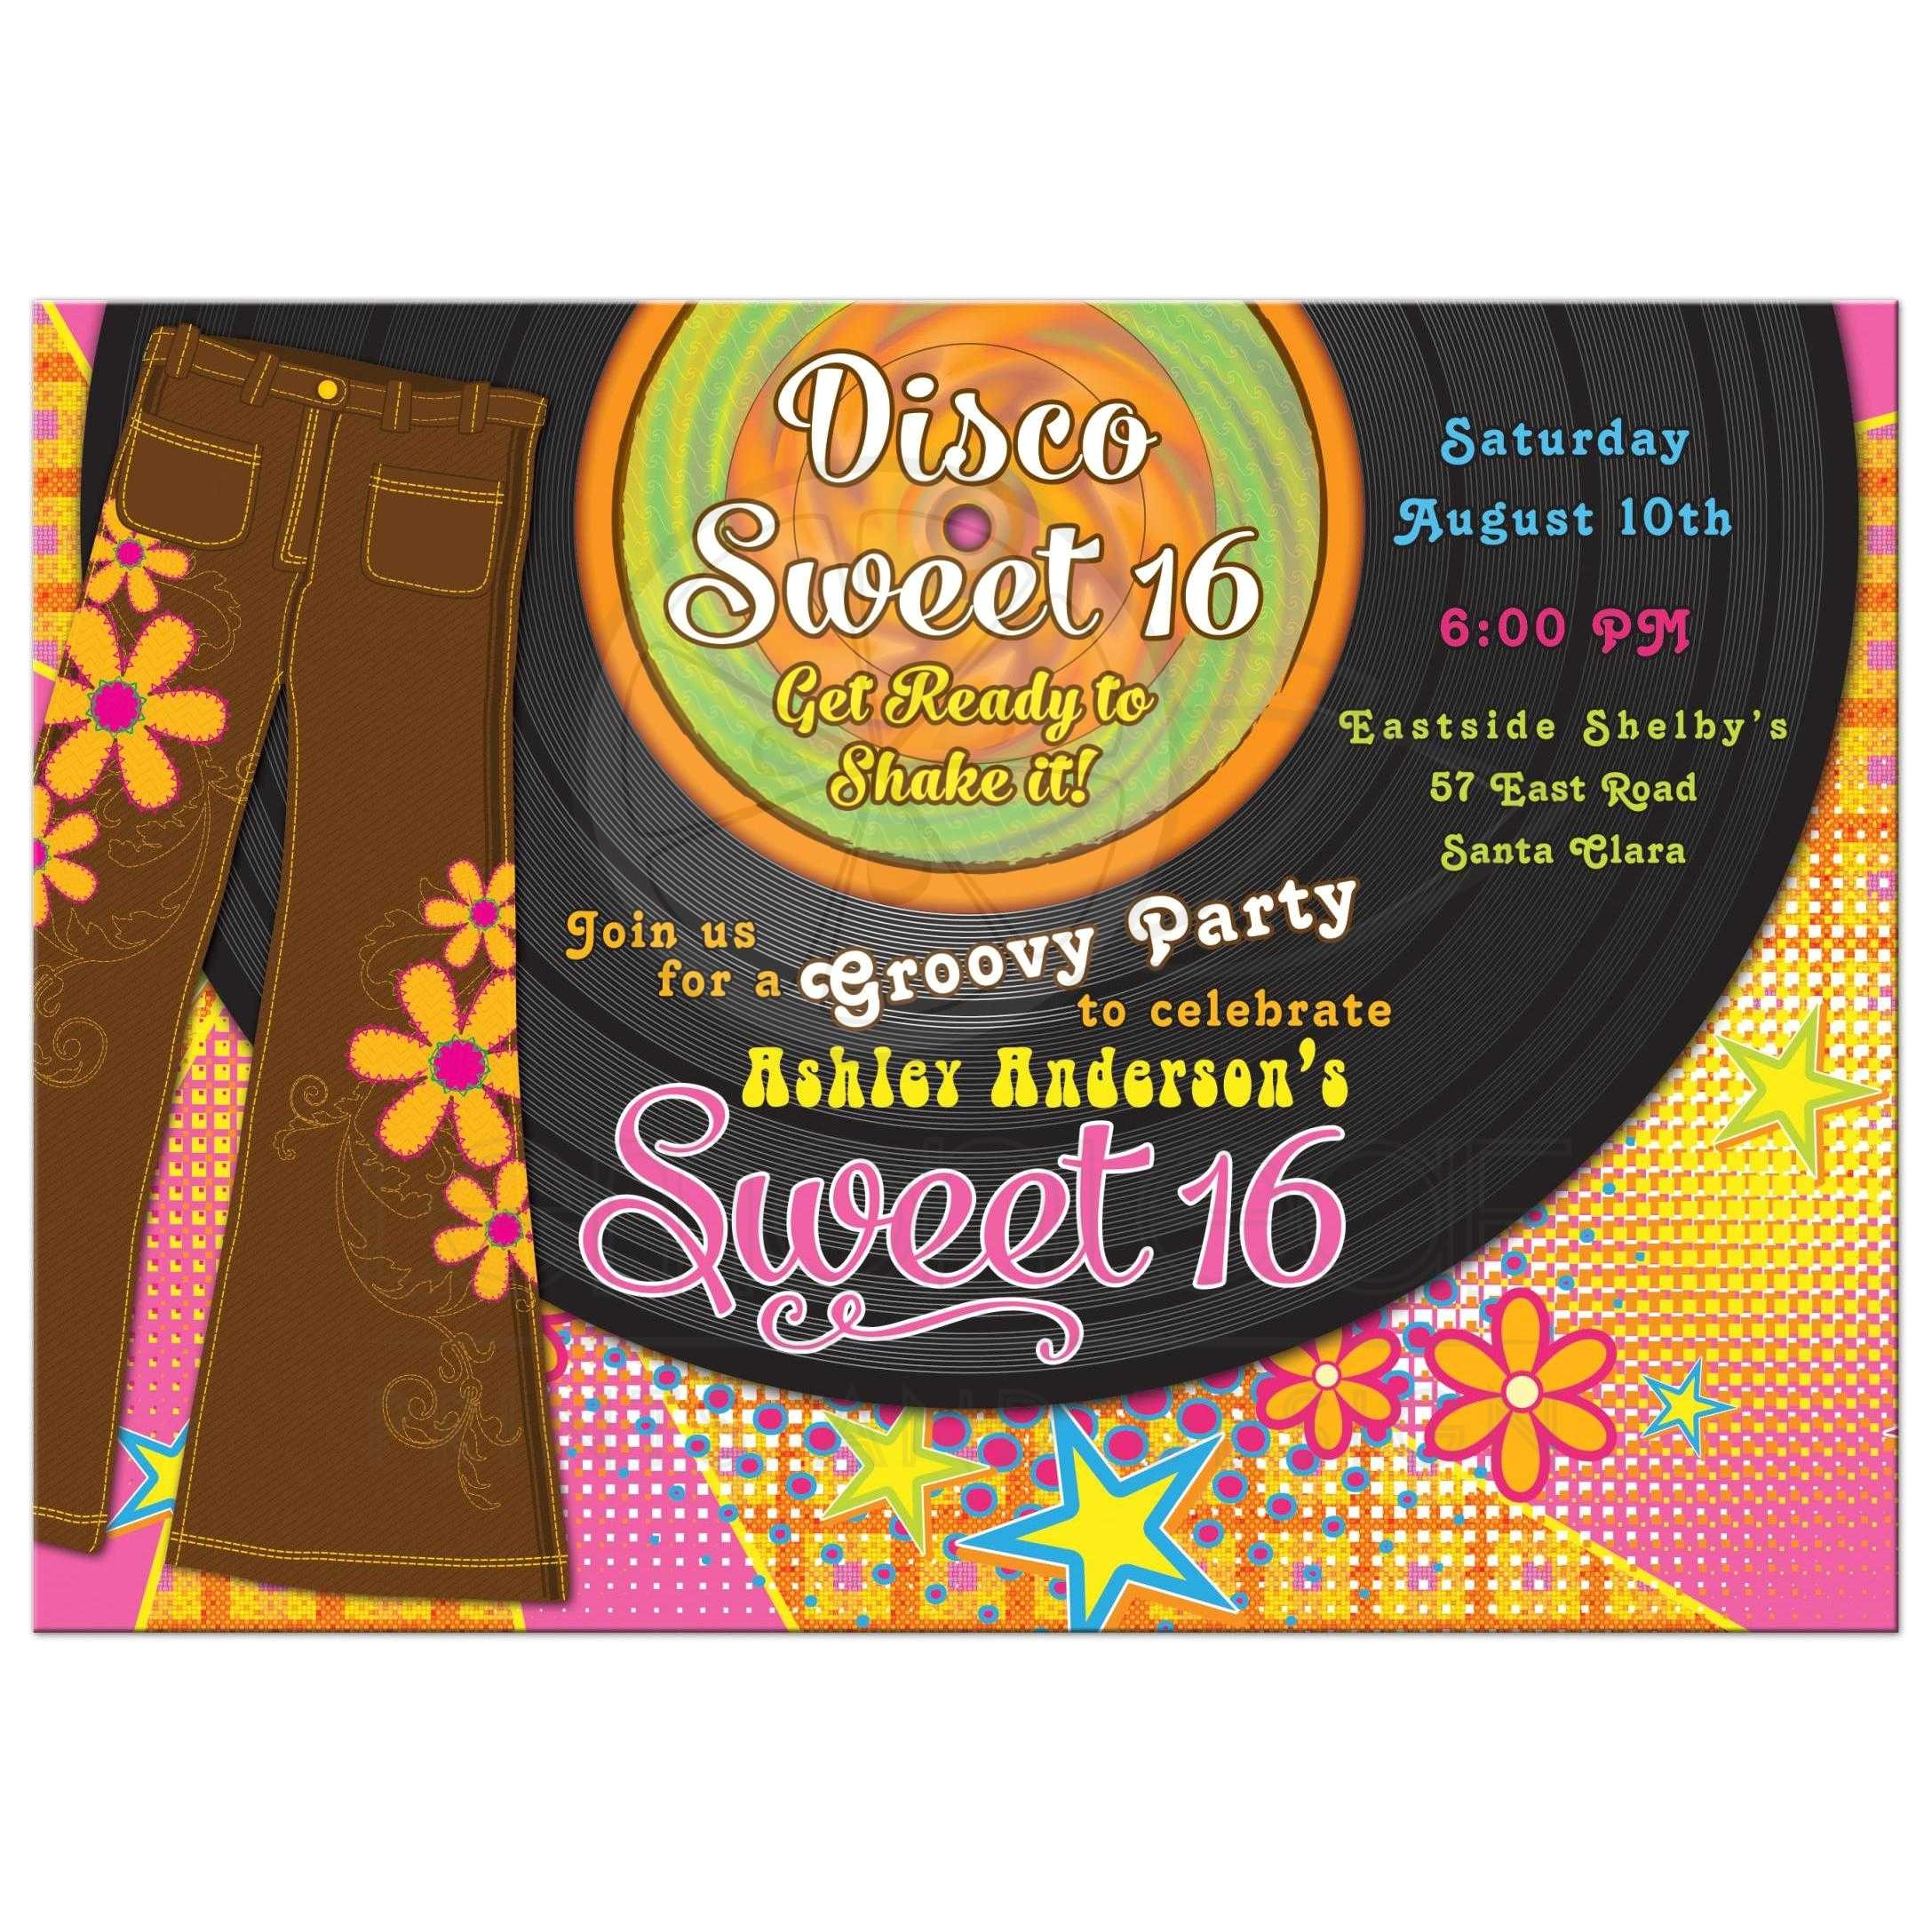 1970s disco sweet 16 invitation bellbottoms record album